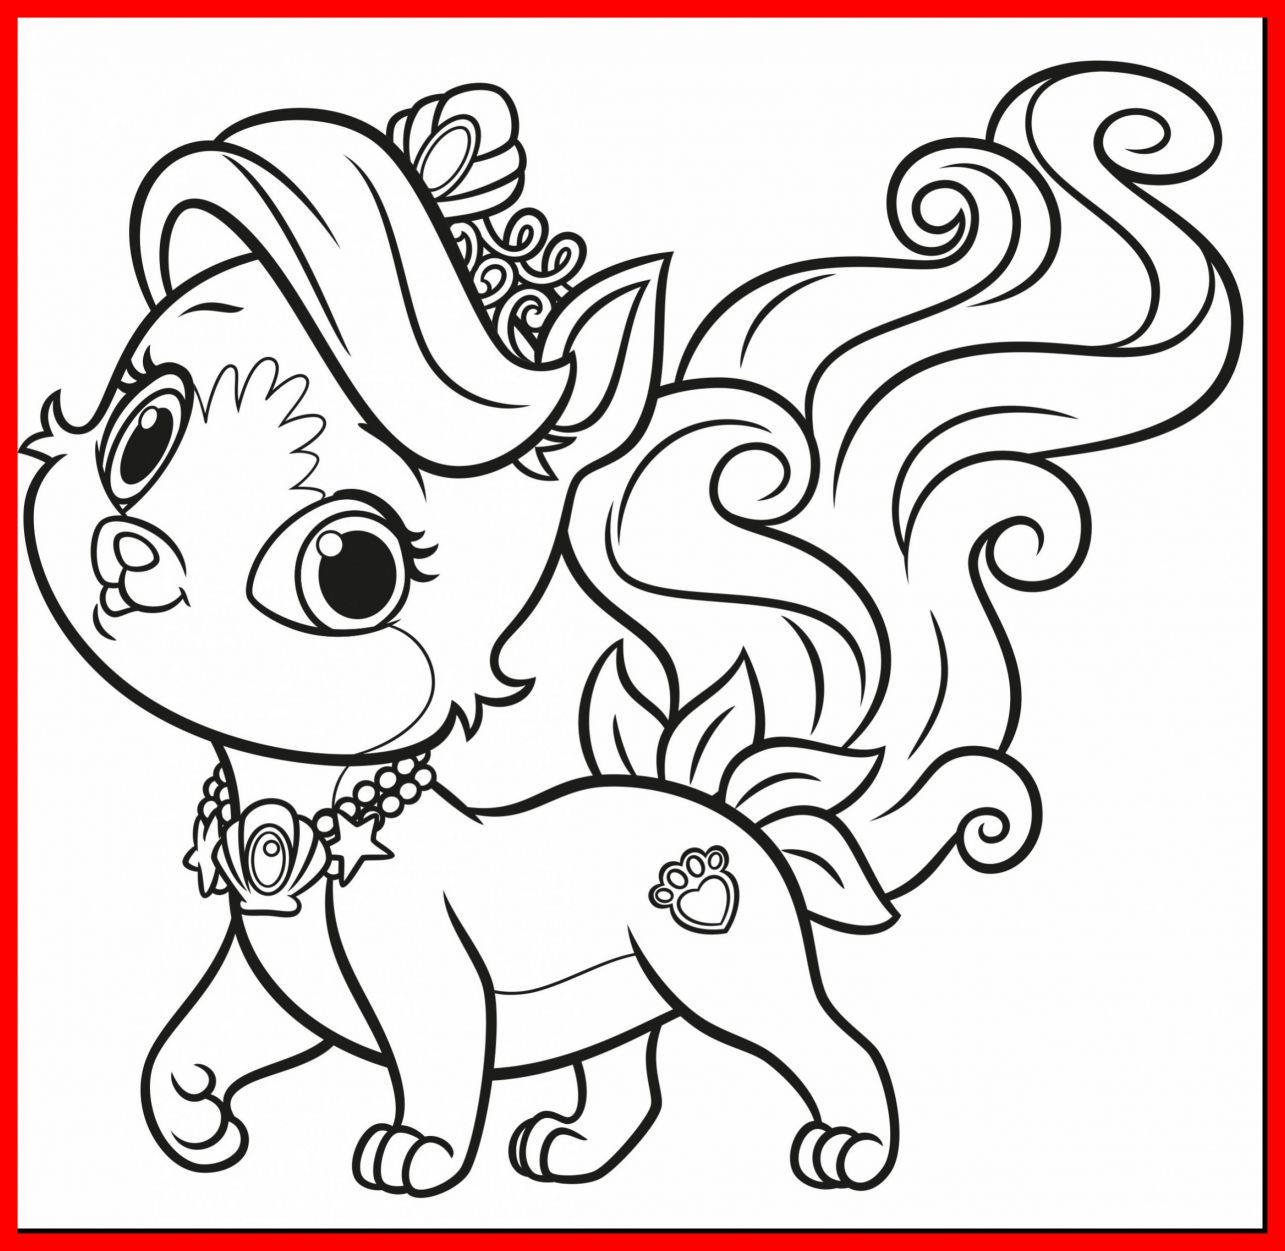 1285x1251 Appealing Summer Penguin Disney Muppet Babies Coloring Page Pict